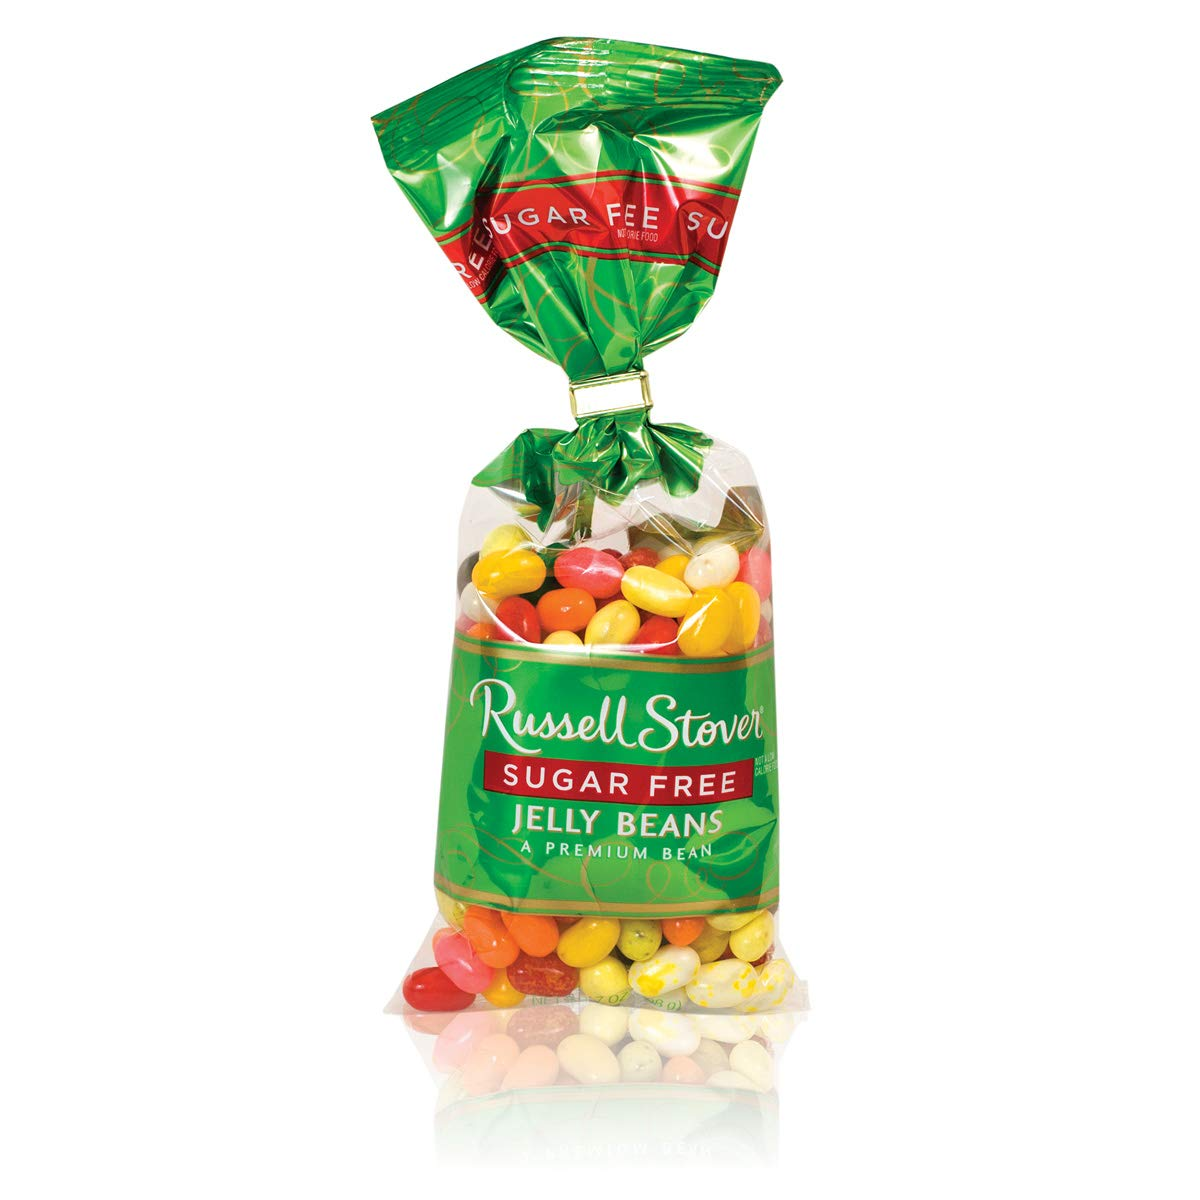 Russell Stover Sugar Free Jelly Beans, 7 Ounce Bag (Pack of 4) by Russell Stover